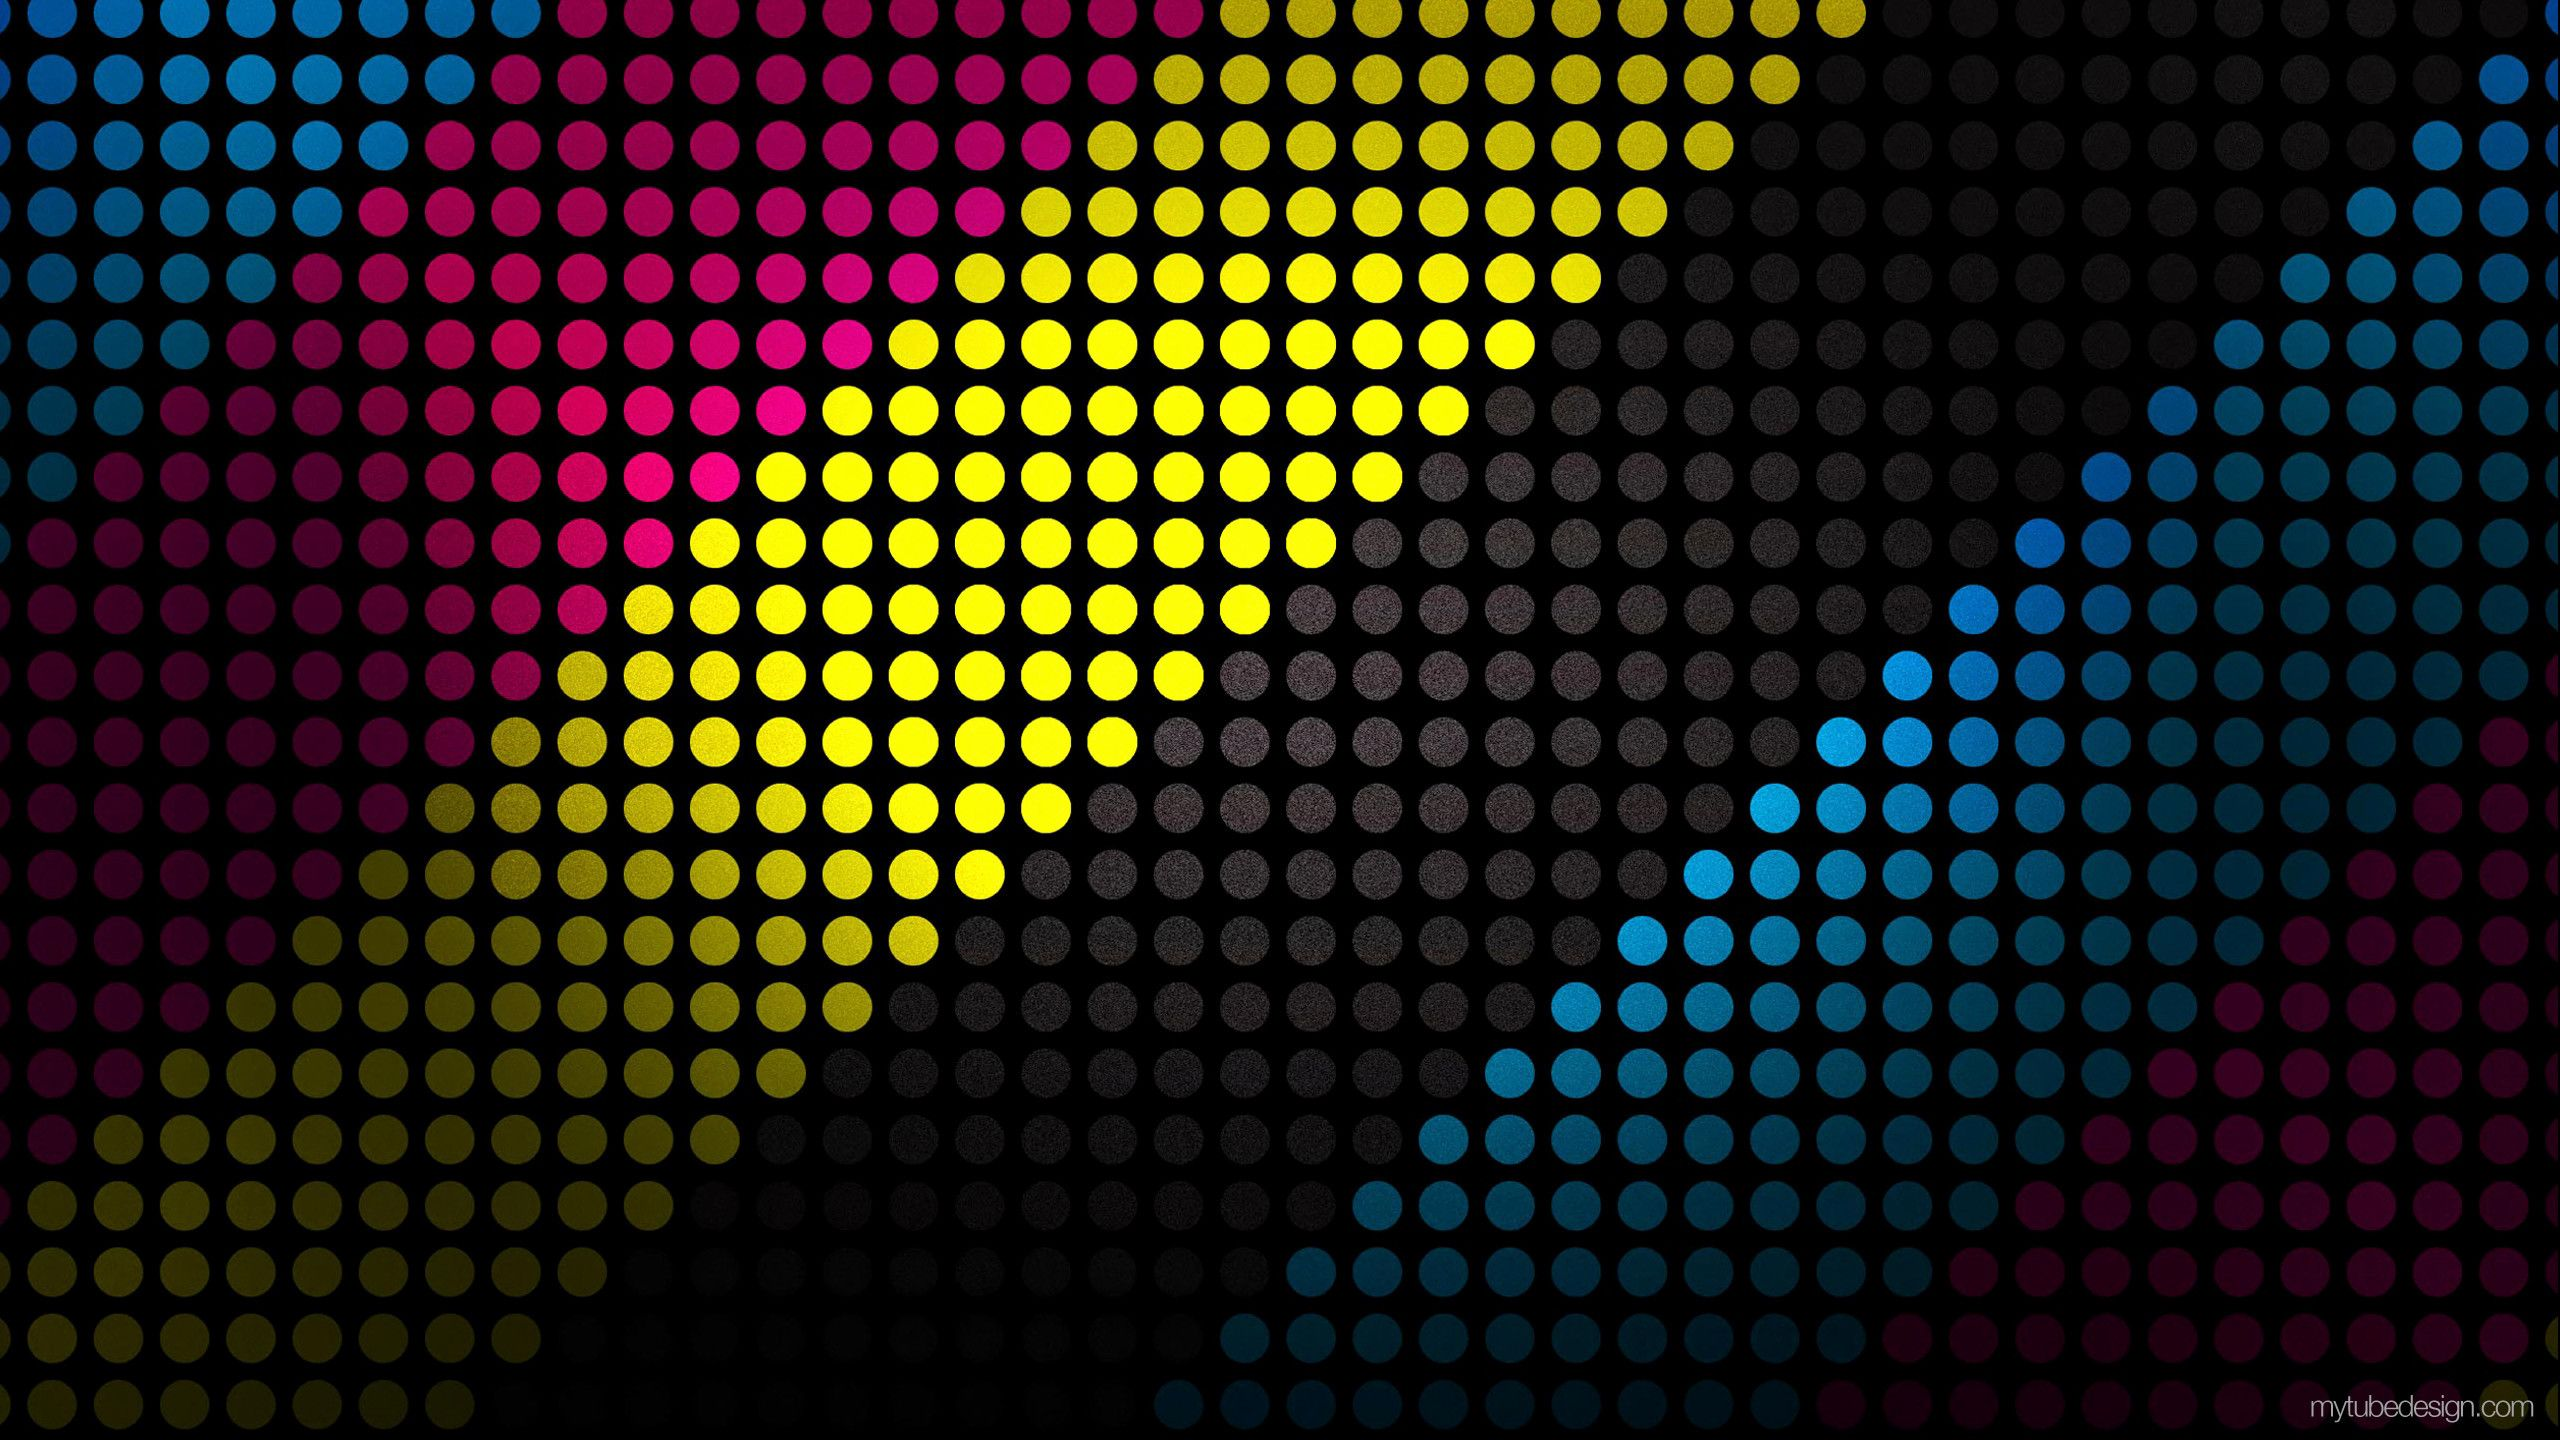 77 2048x1152 Youtube Wallpapers On Wallpaperplay Youtube Channel Art Channel Art Art Wallpaper Hd wallpaper for youtube channel art